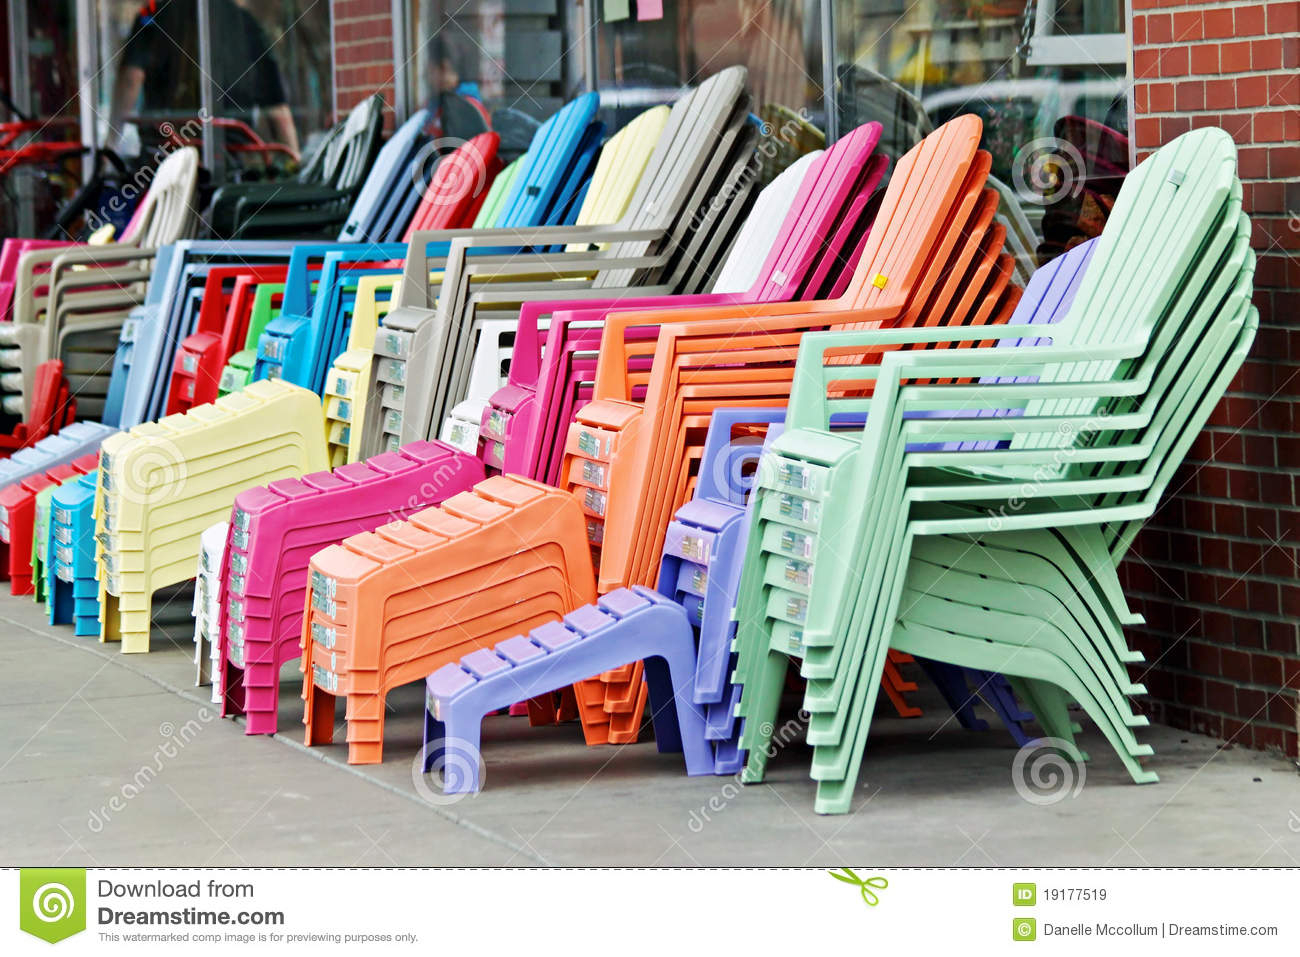 Resin adirondack chairs